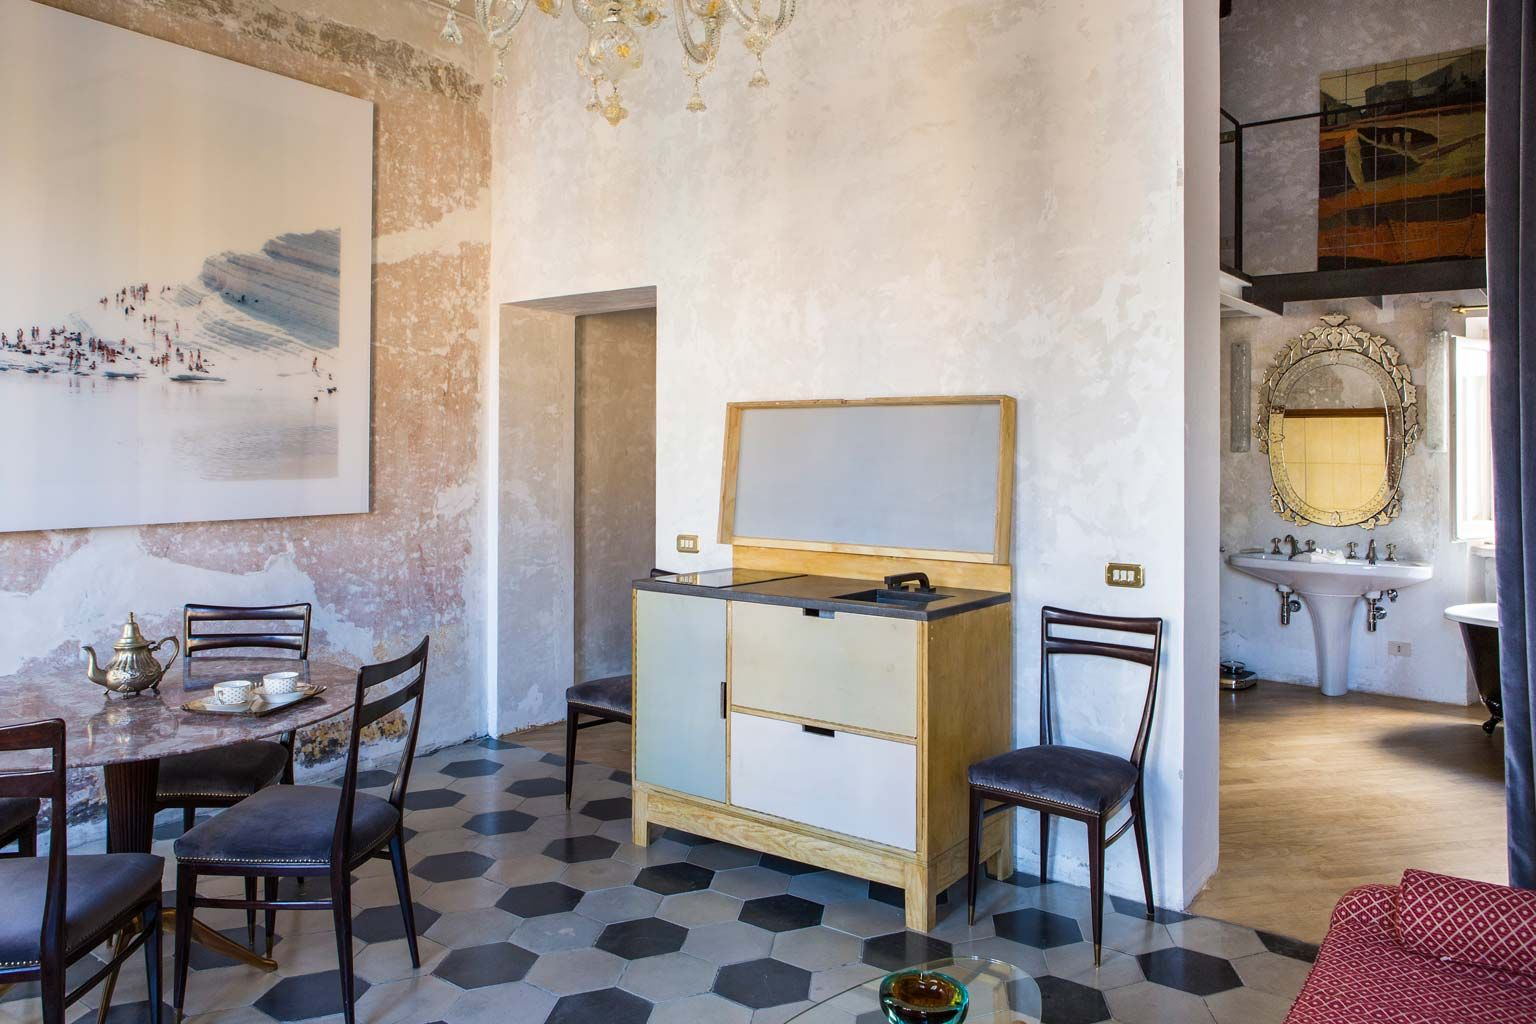 galley suite - galley suite roma - gallery hotel roma - g - rough - g-rough